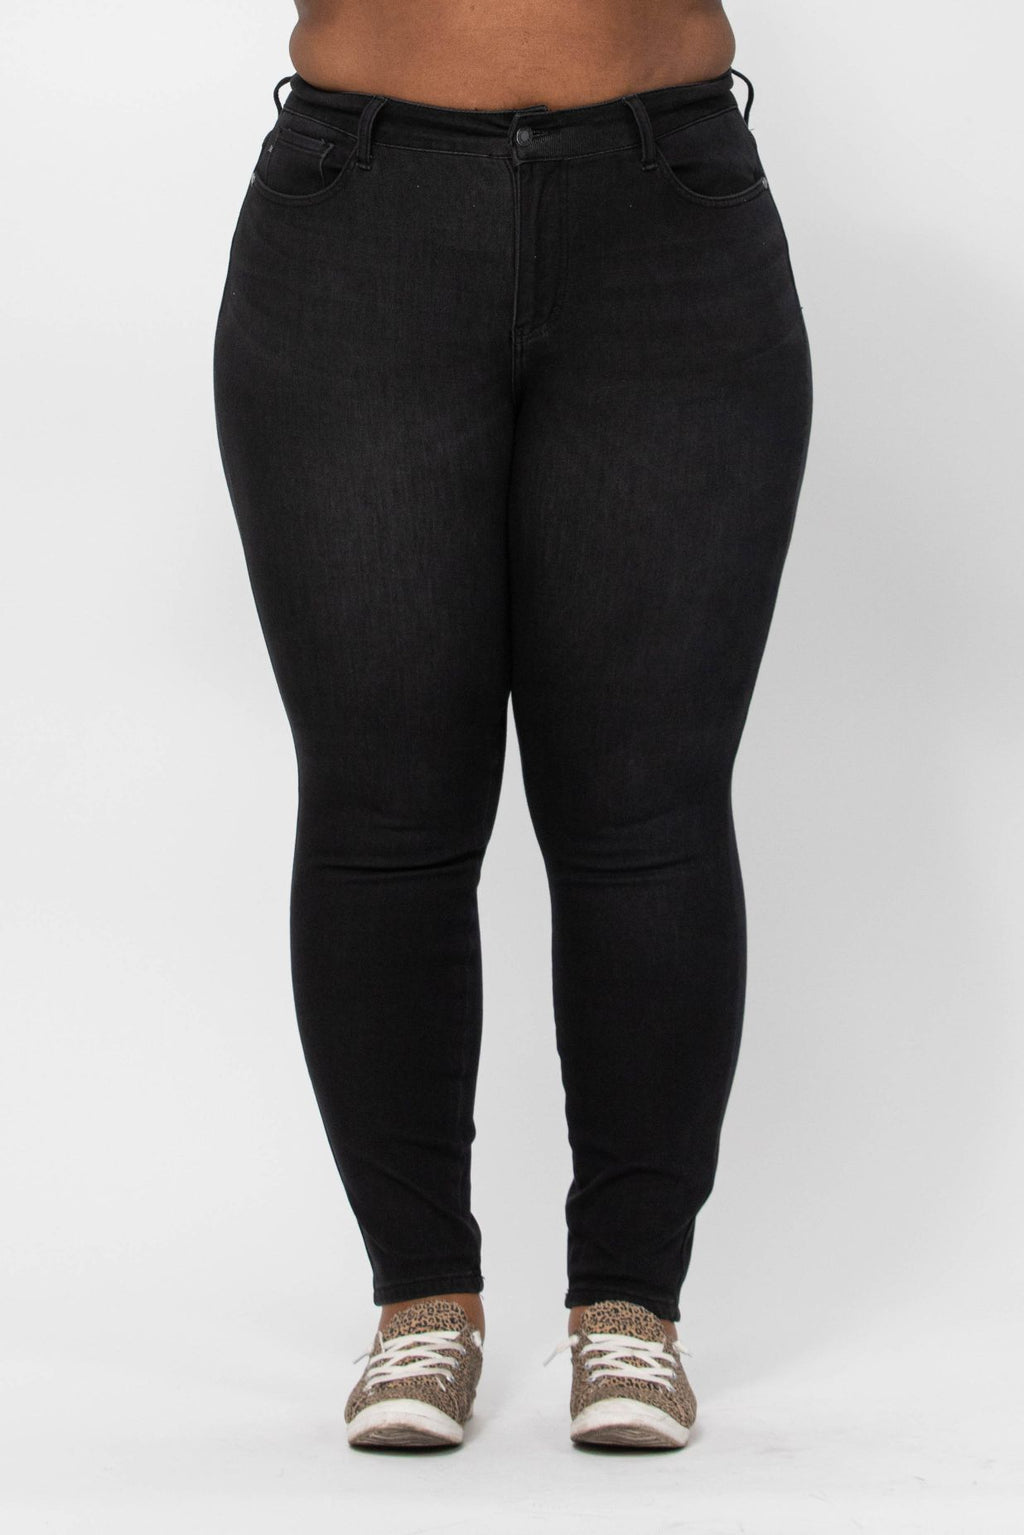 Dianna Black Thermal Skinny - PLUS